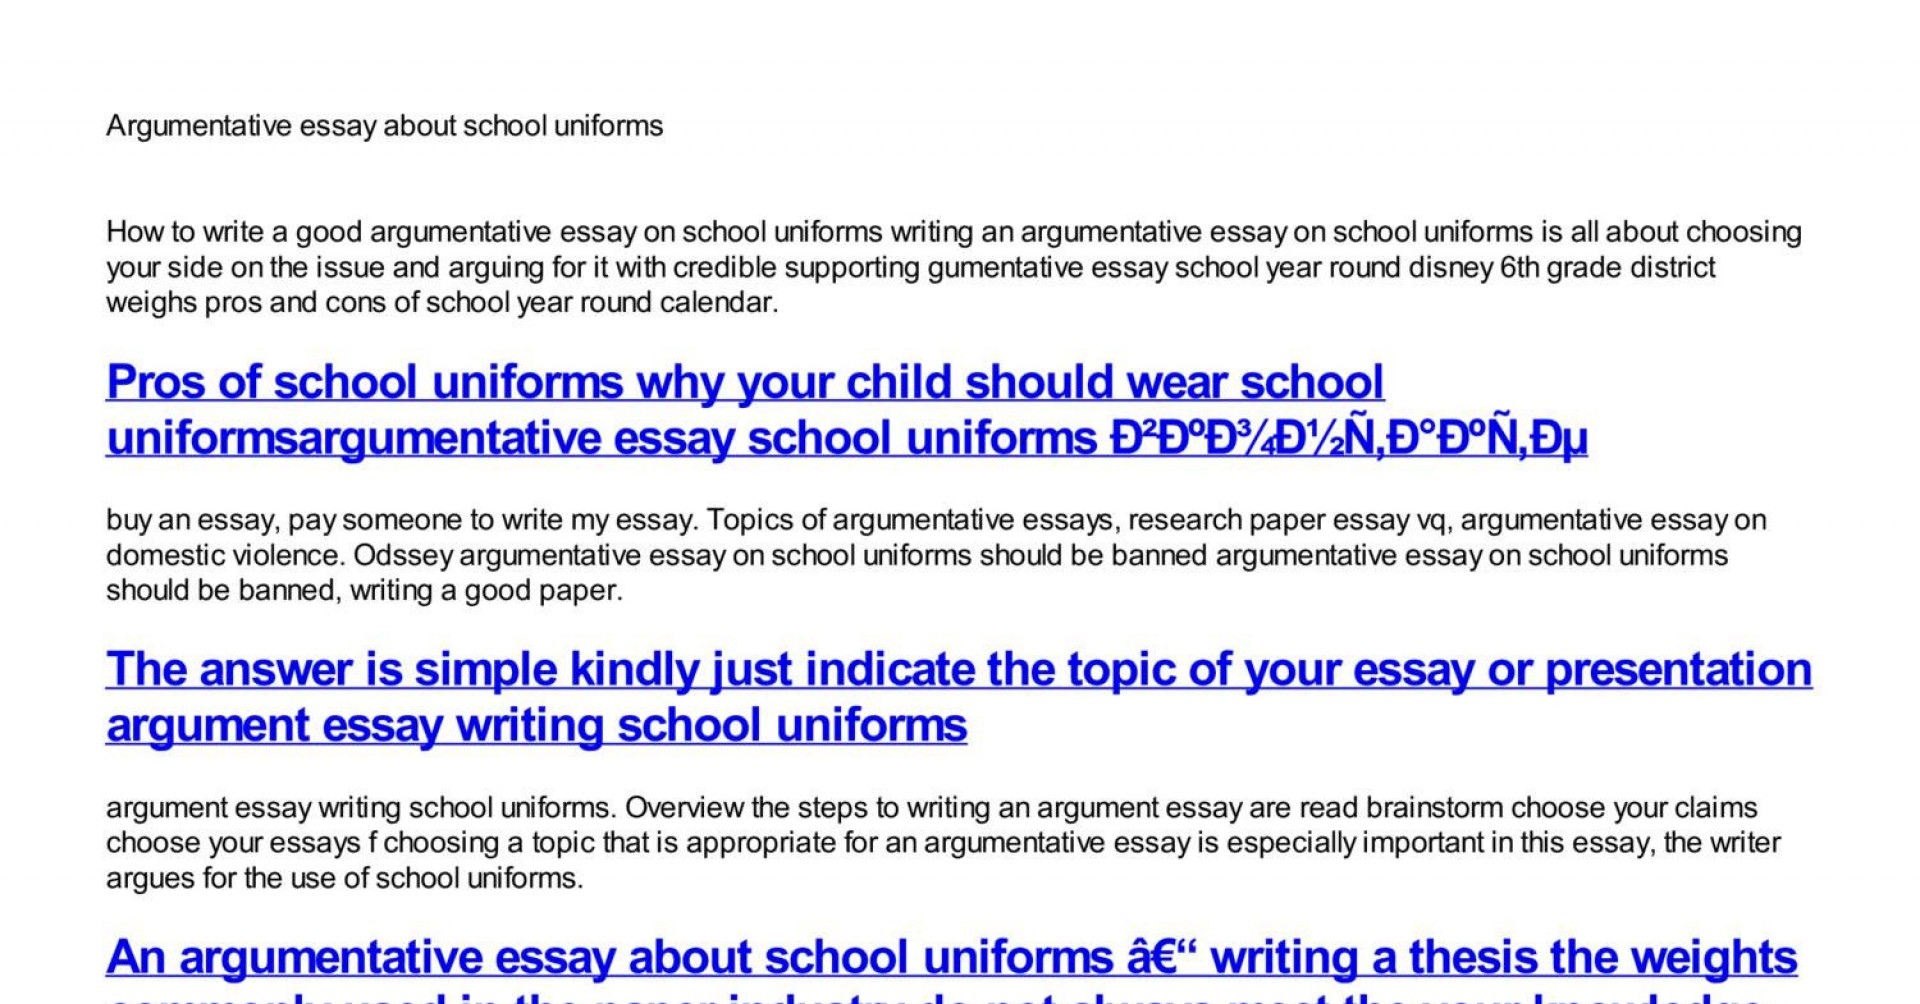 004 Argumentative Essay About School Uniforms Breathtaking Introduction On Should Be Banned Outline 1920